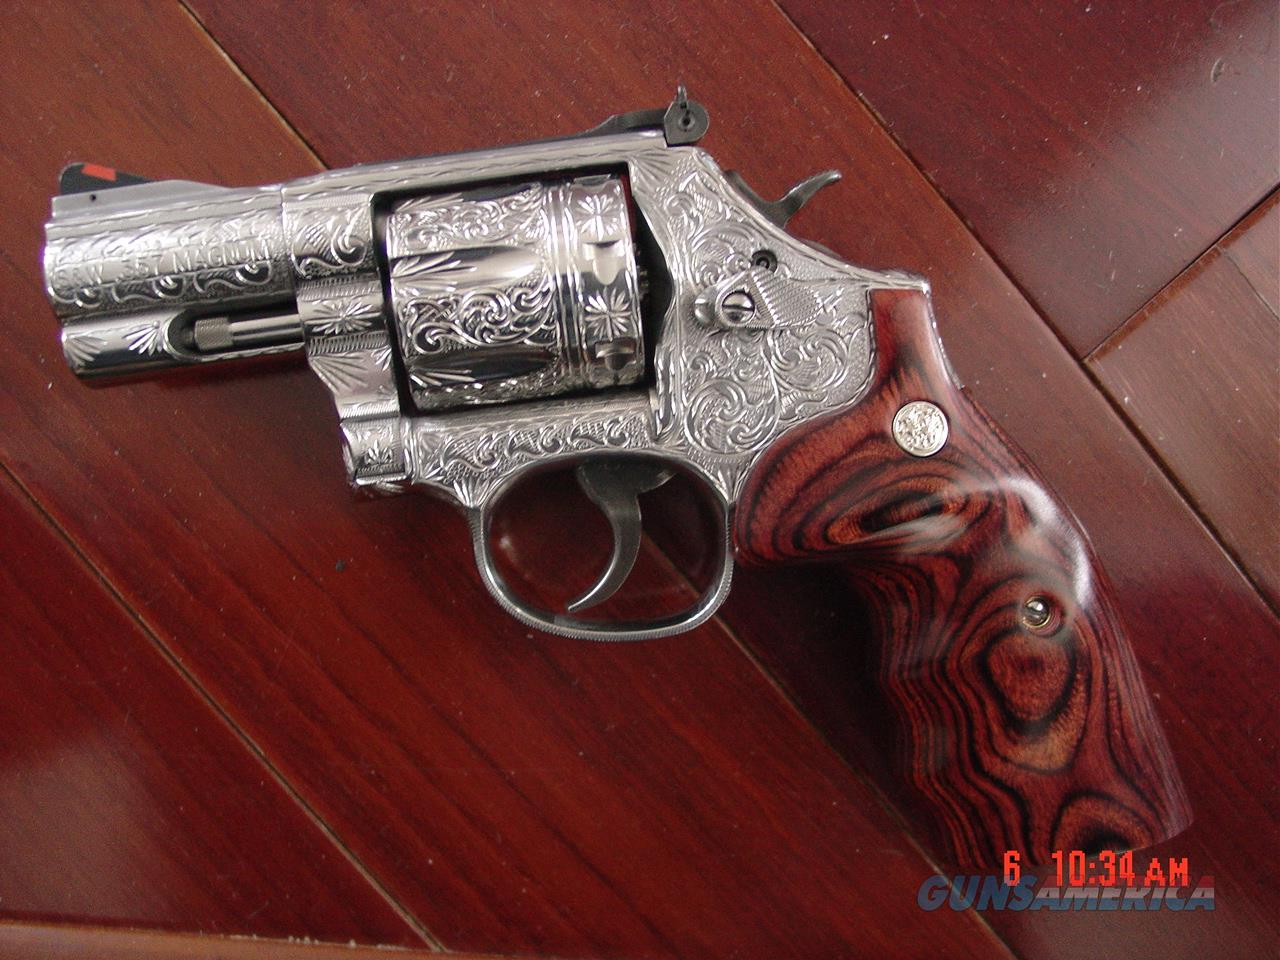 "Smith & Wesson 686-6 plus,7 shot,2 1/2"",fully deep hand engraved & polished by Flannery Engraving,Rosewood grips,certificate,box & manual-a real work of art 357 Mag.  Guns > Pistols > Smith & Wesson Revolvers > Full Frame Revolver"